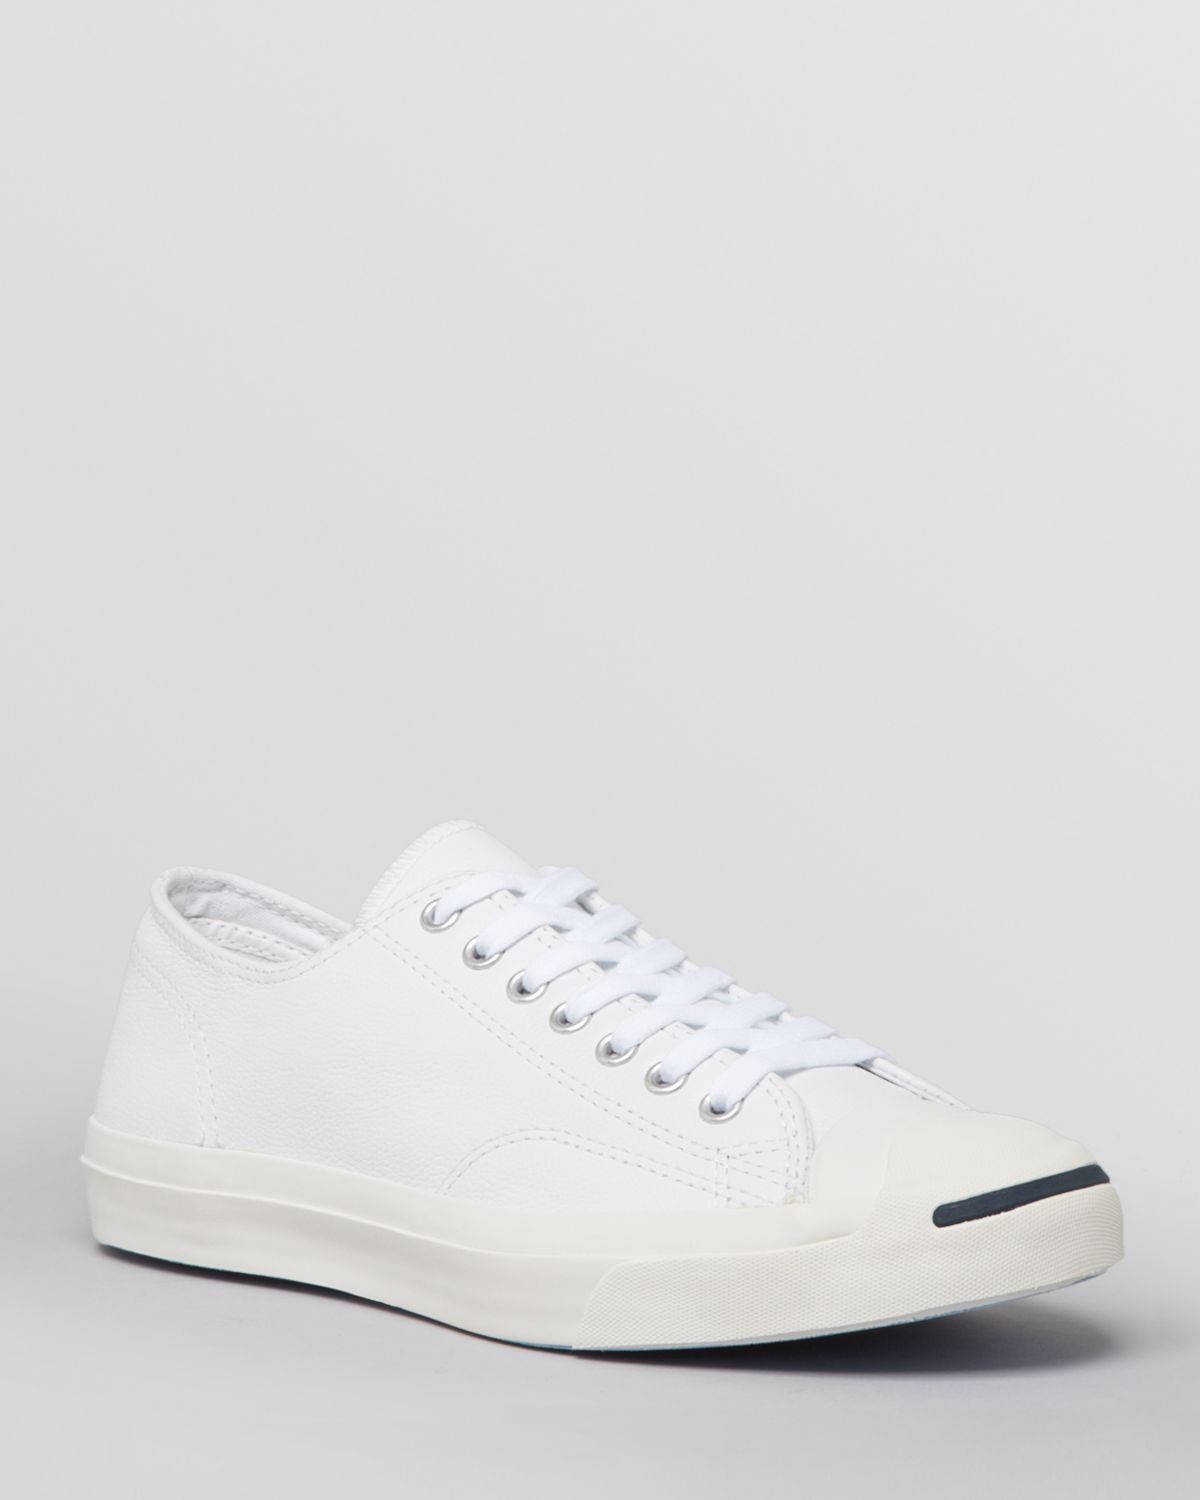 Converse Quot Jack Purcell Quot Leather Sneakers In White For Men